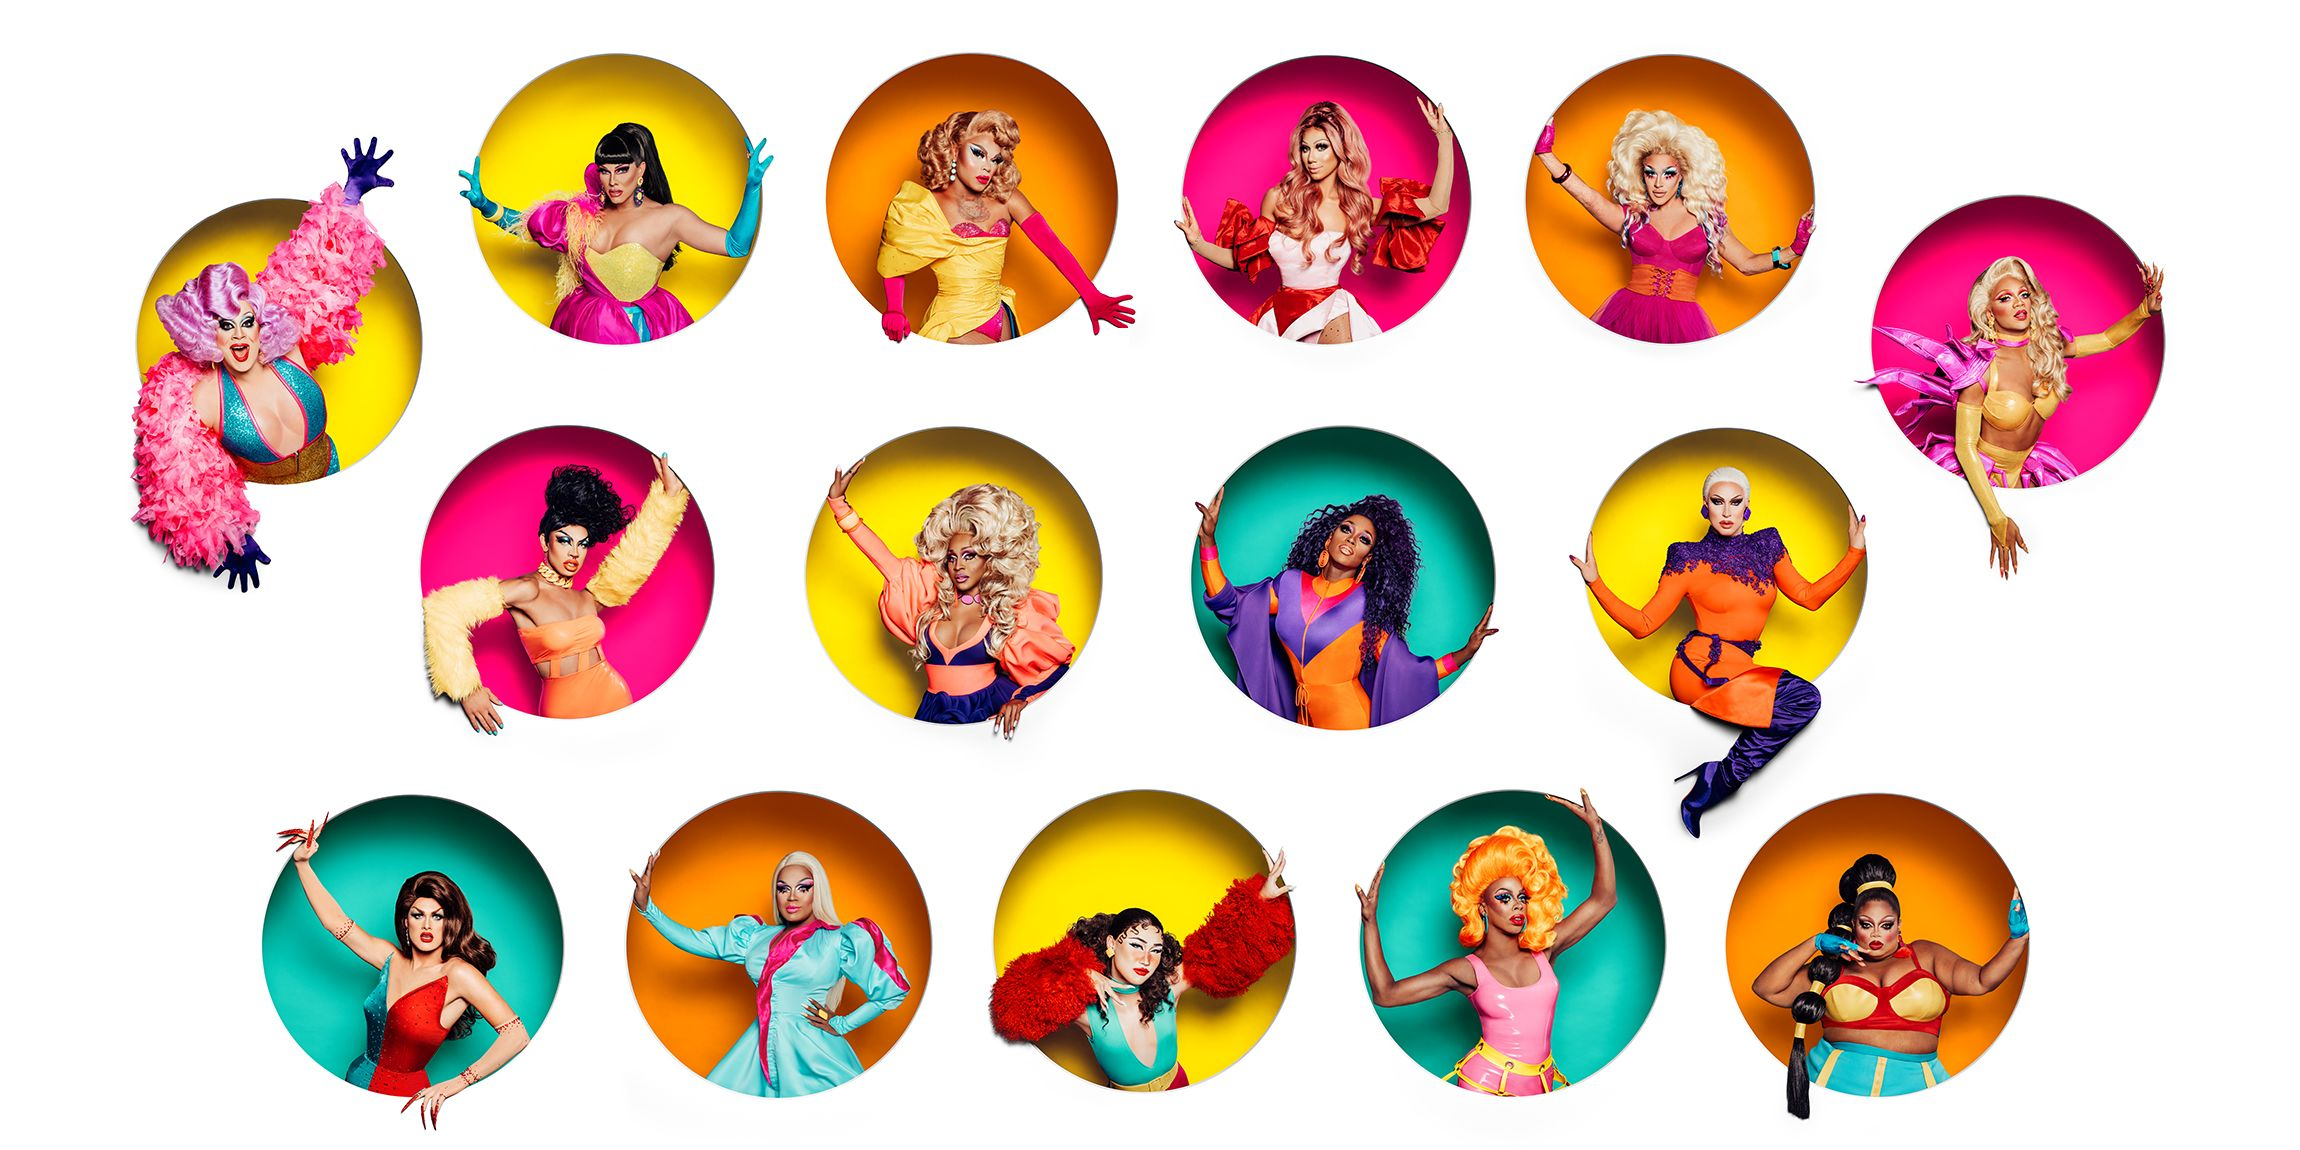 'RuPaul's Drag Race' Season 11 Queens Revealed - See the Cast!